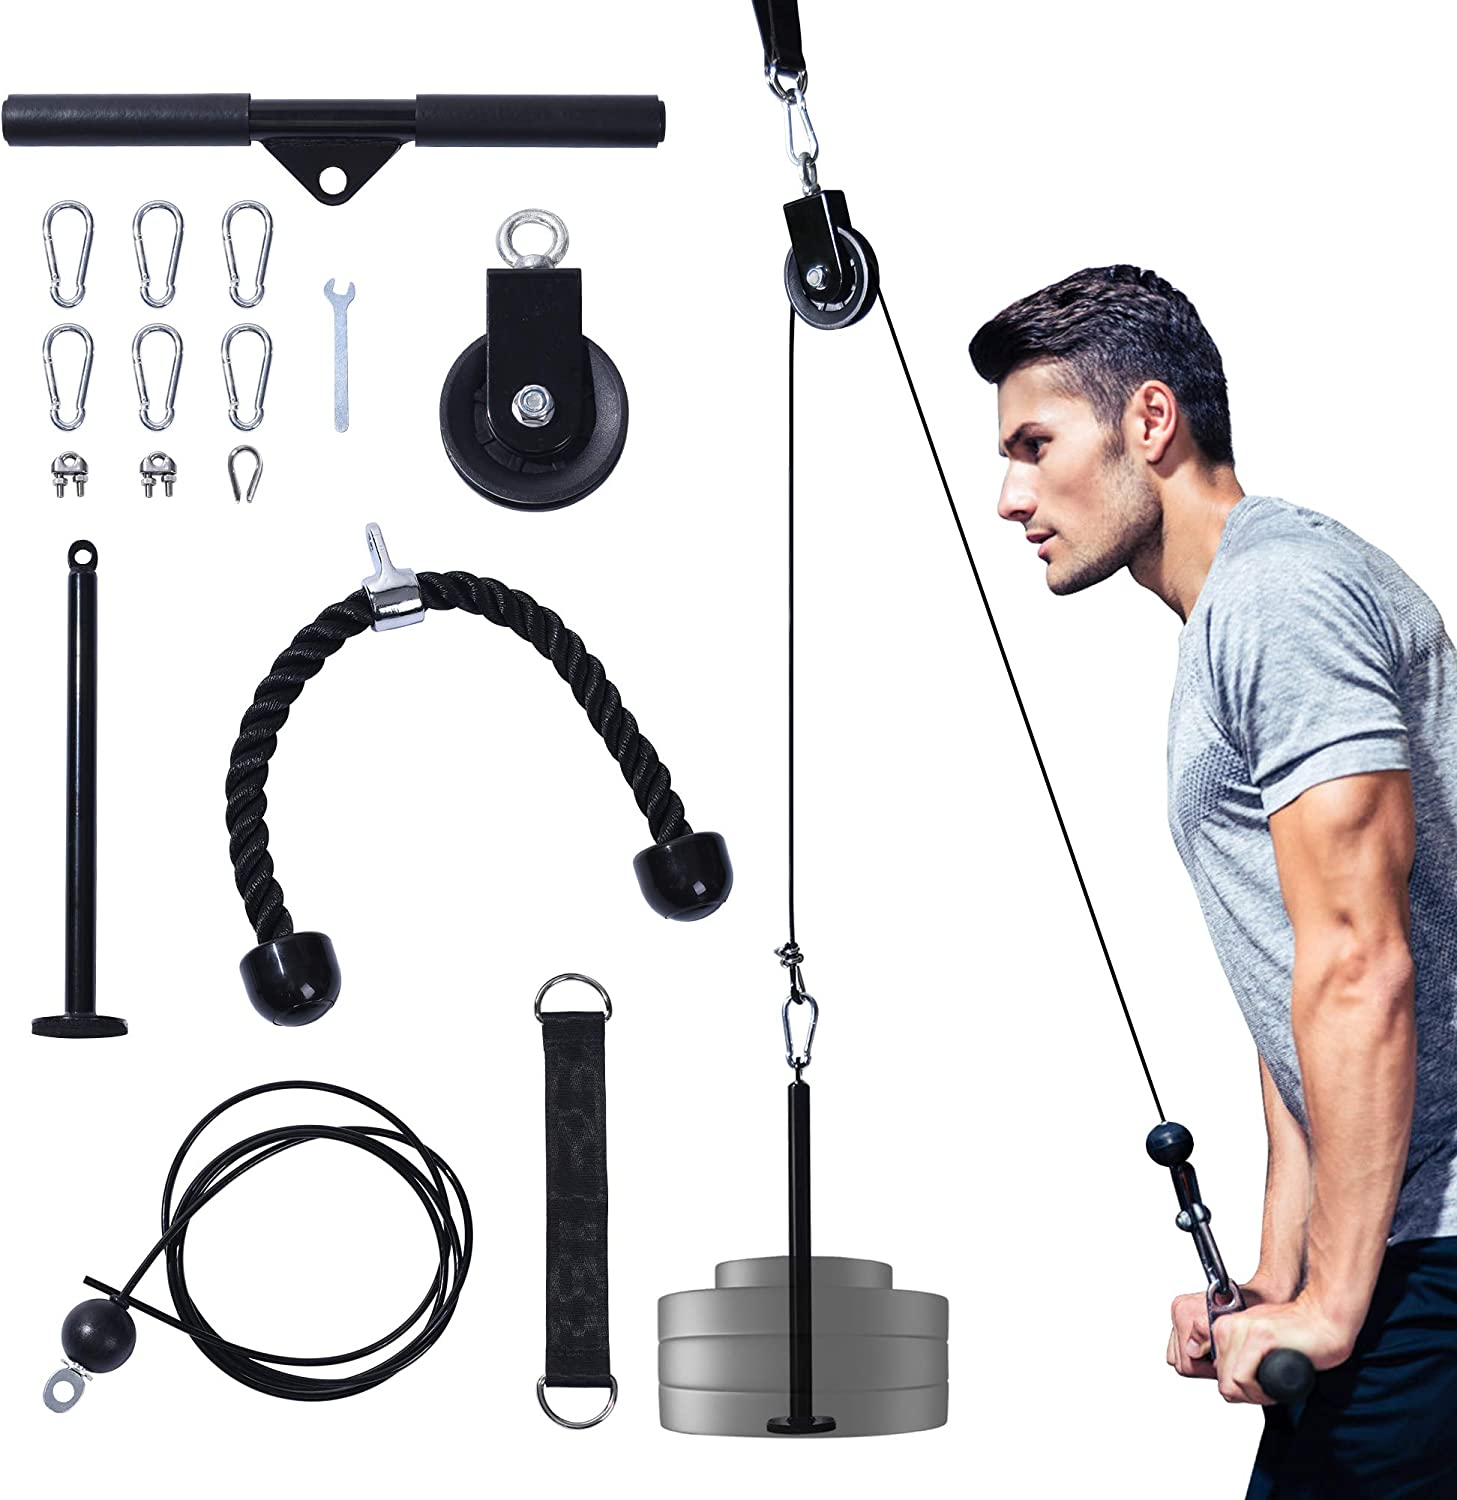 DEBOOB Upgraded LAT Pulldown Cable Pulley Attachments Set $30  Coupon